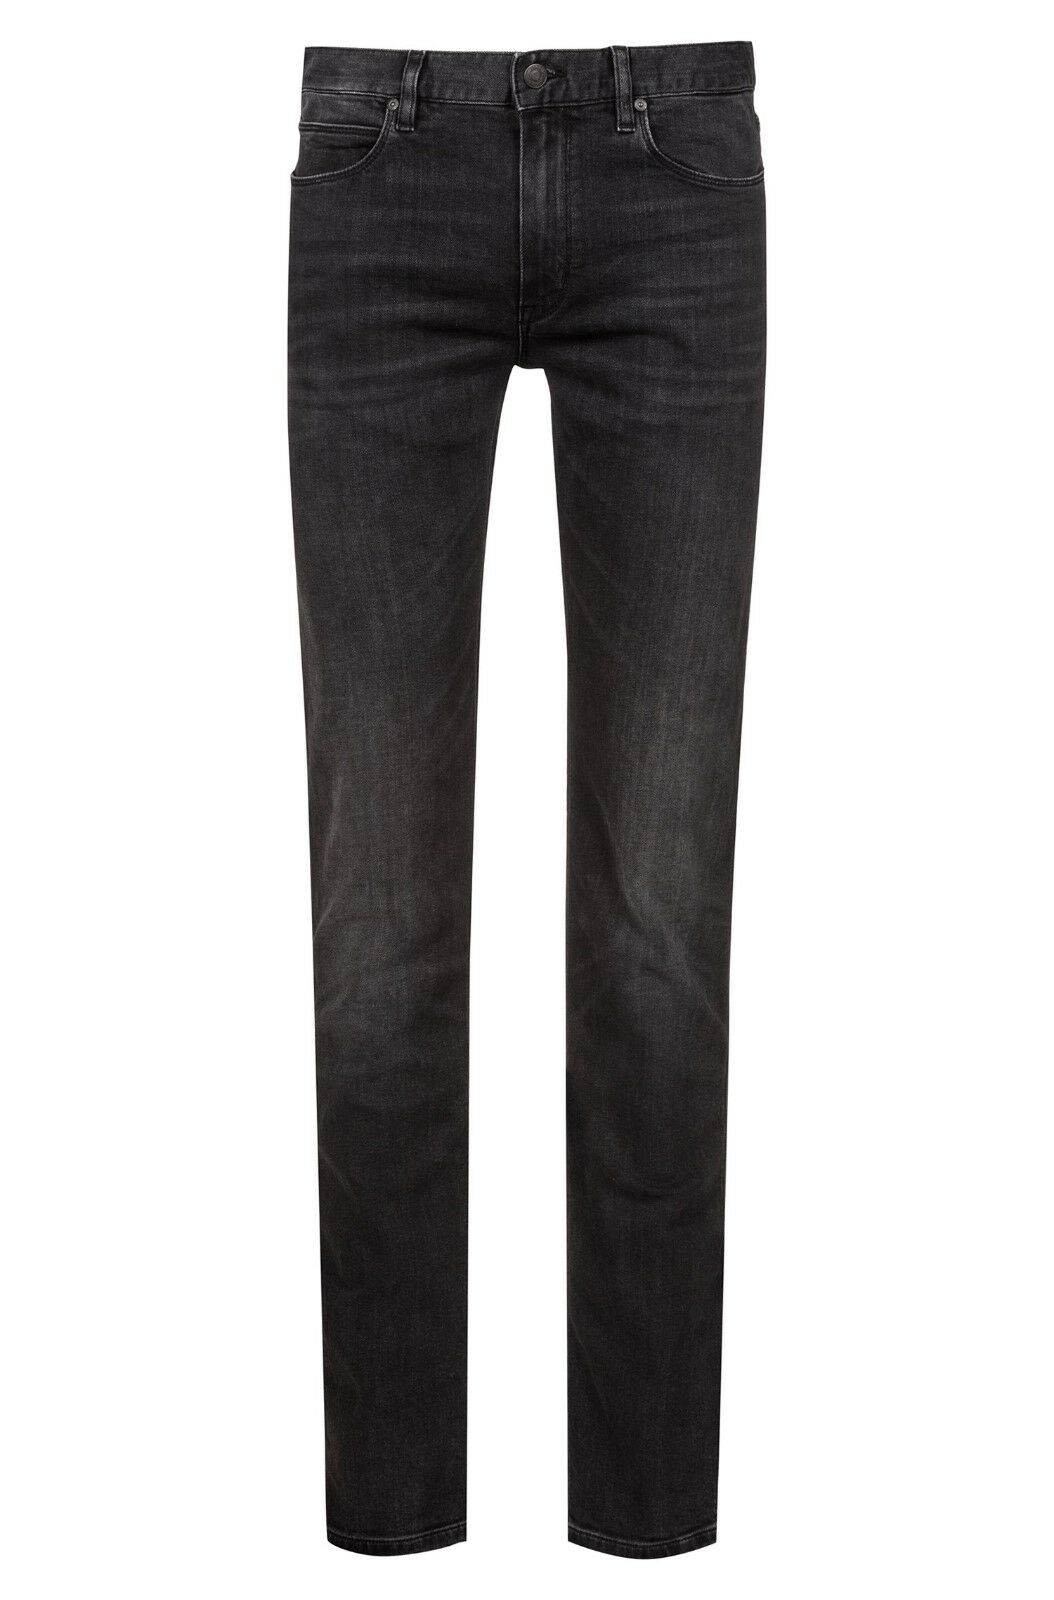 Hugo Boss Slim-fit jeans in dark-grau stretch denim Style Hugo 708